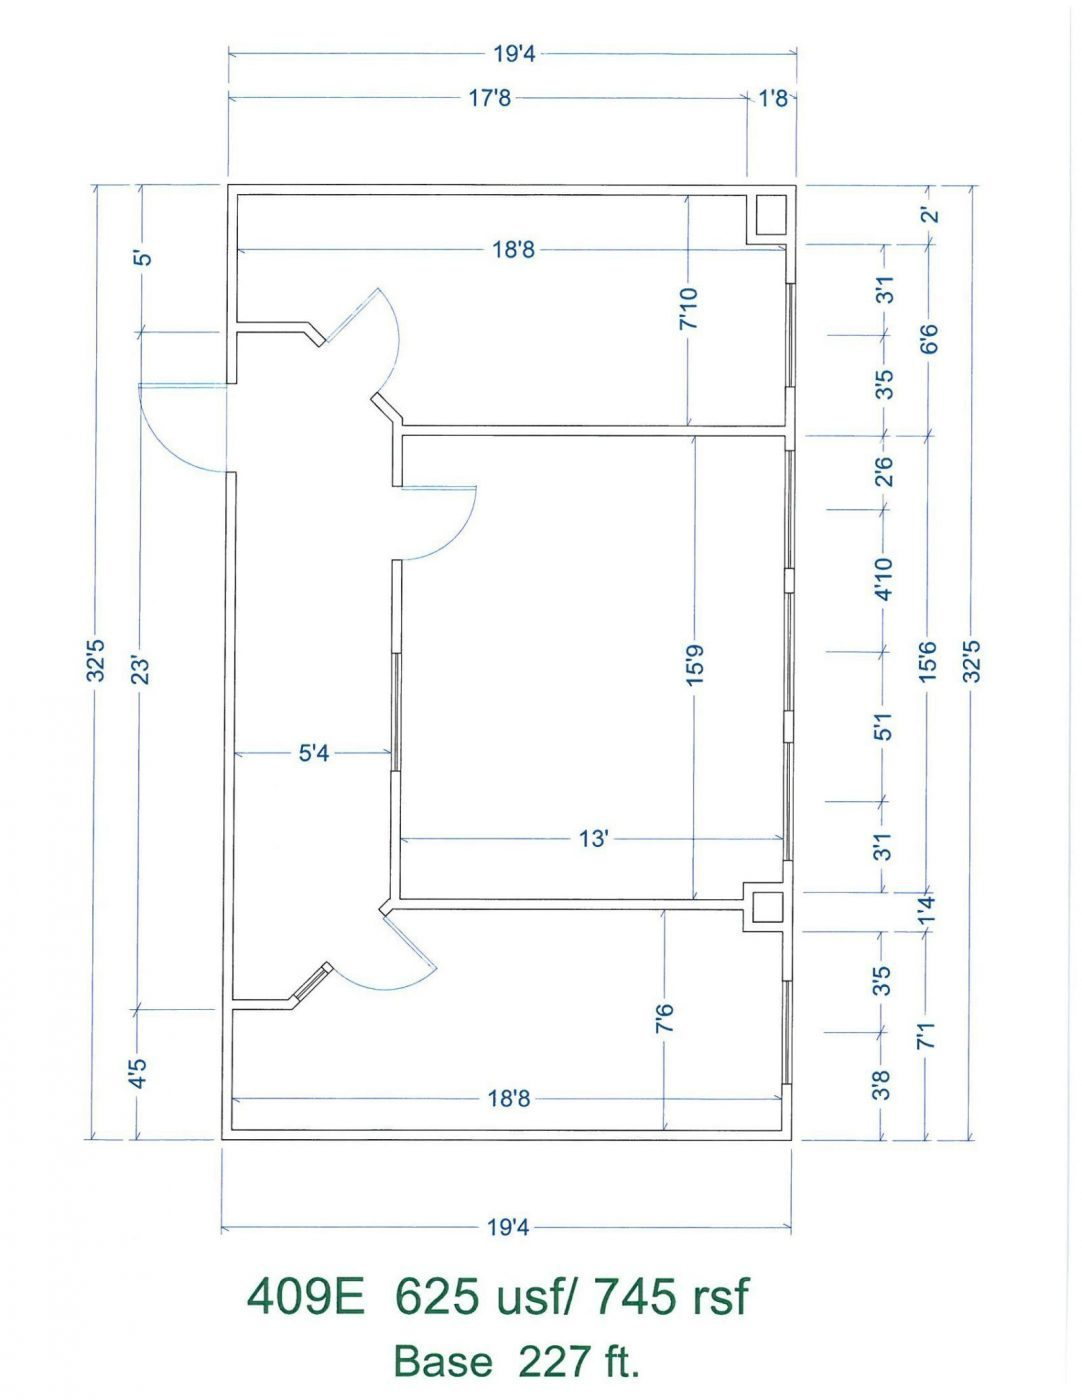 Floor Plan for unit 409E at 15565 Northland Dr, 15565 Northland Dr - East, 15565 Northland Dr Southfield, MI 48075